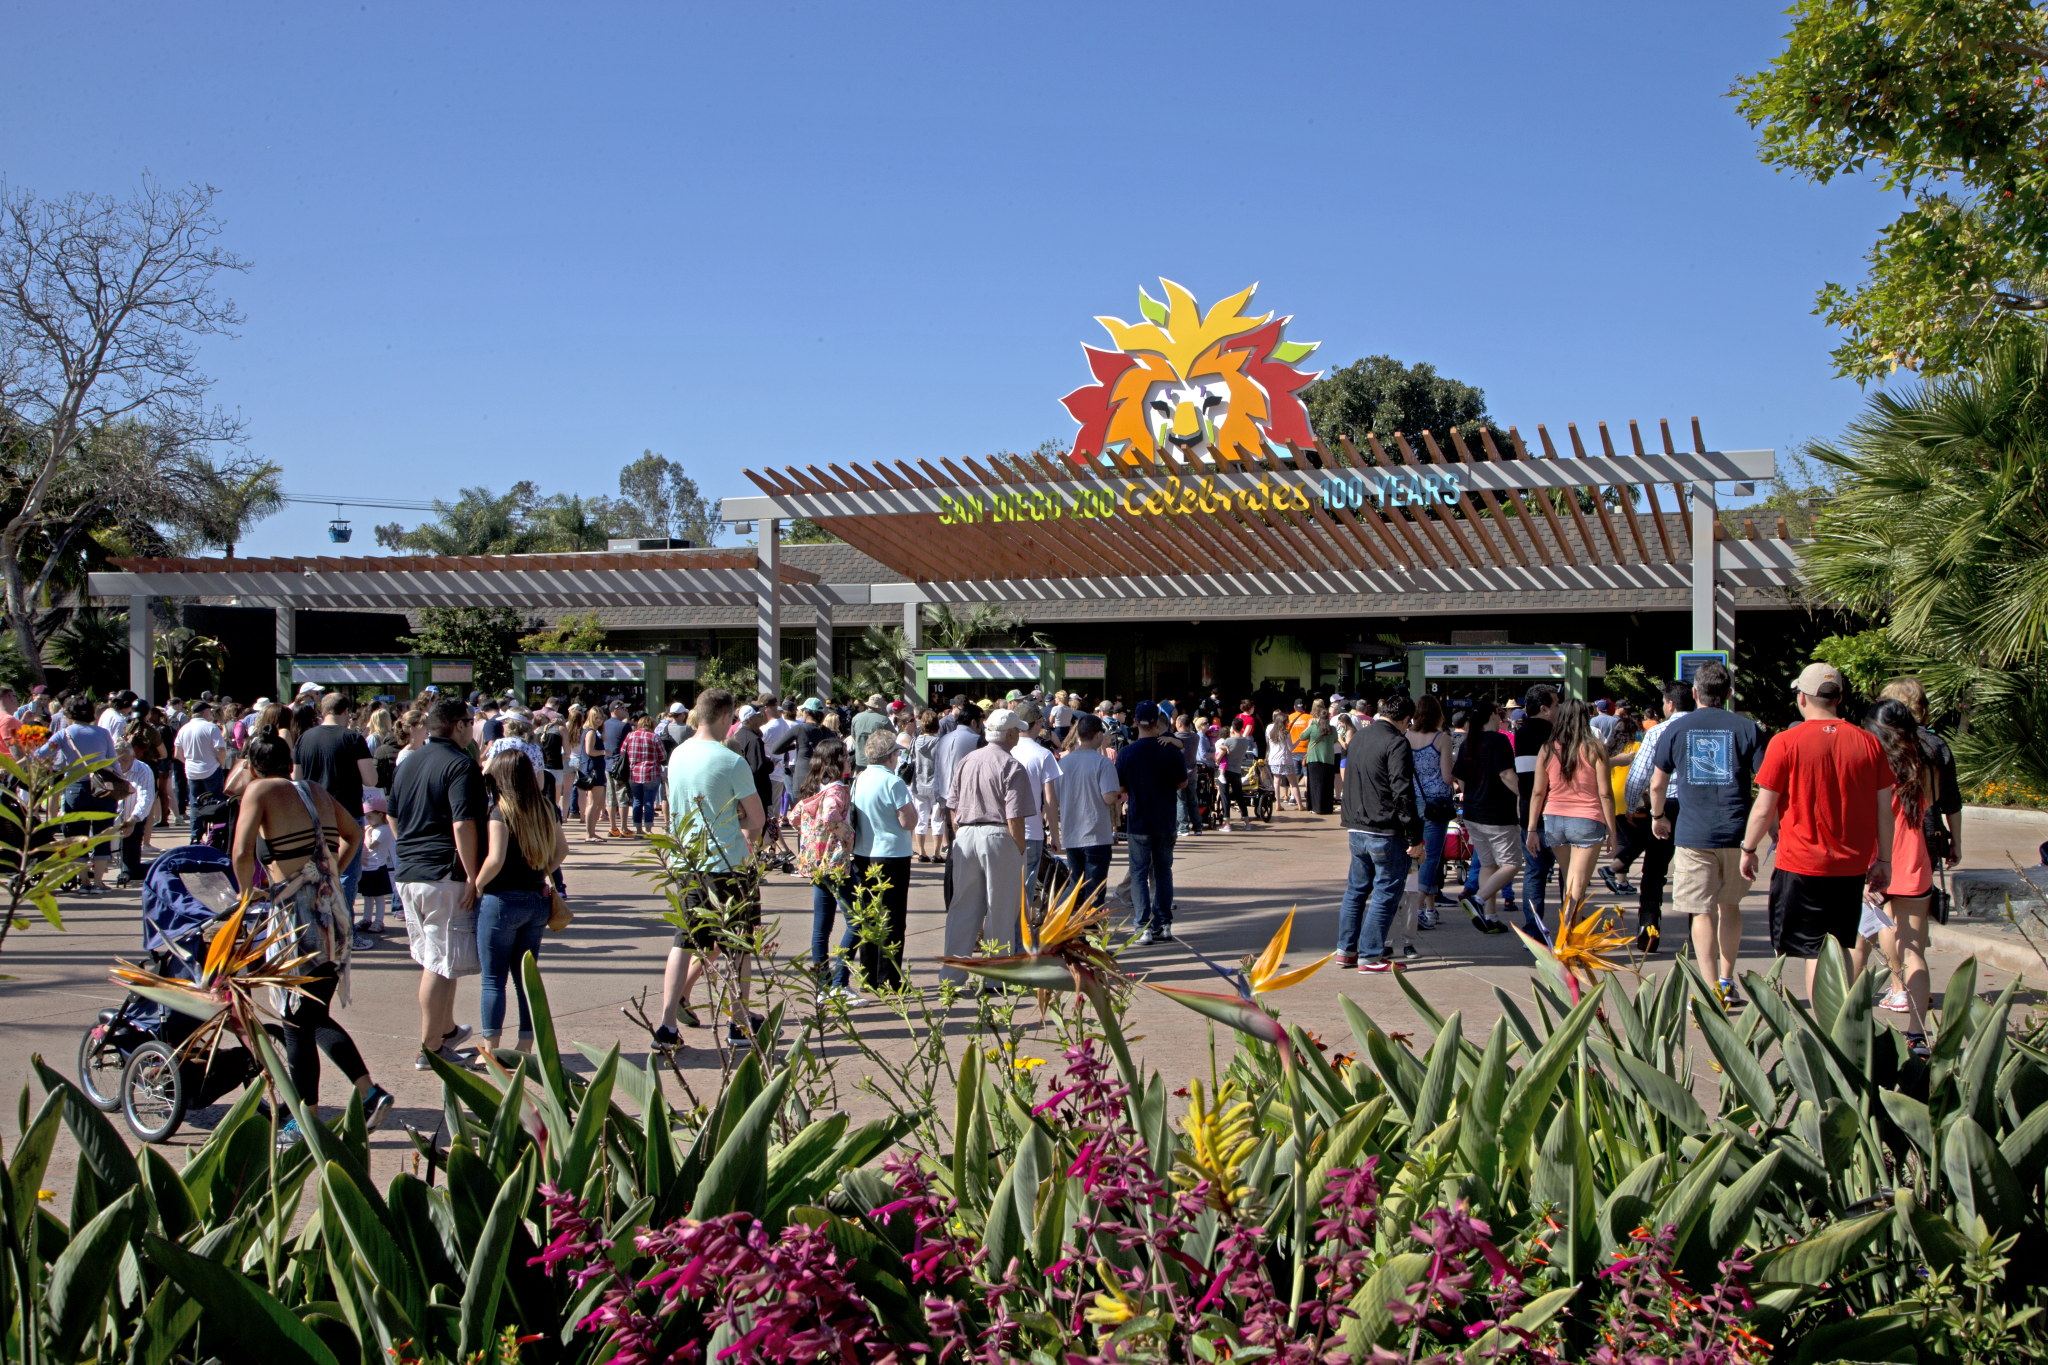 San Diego Zoo Front Entrance